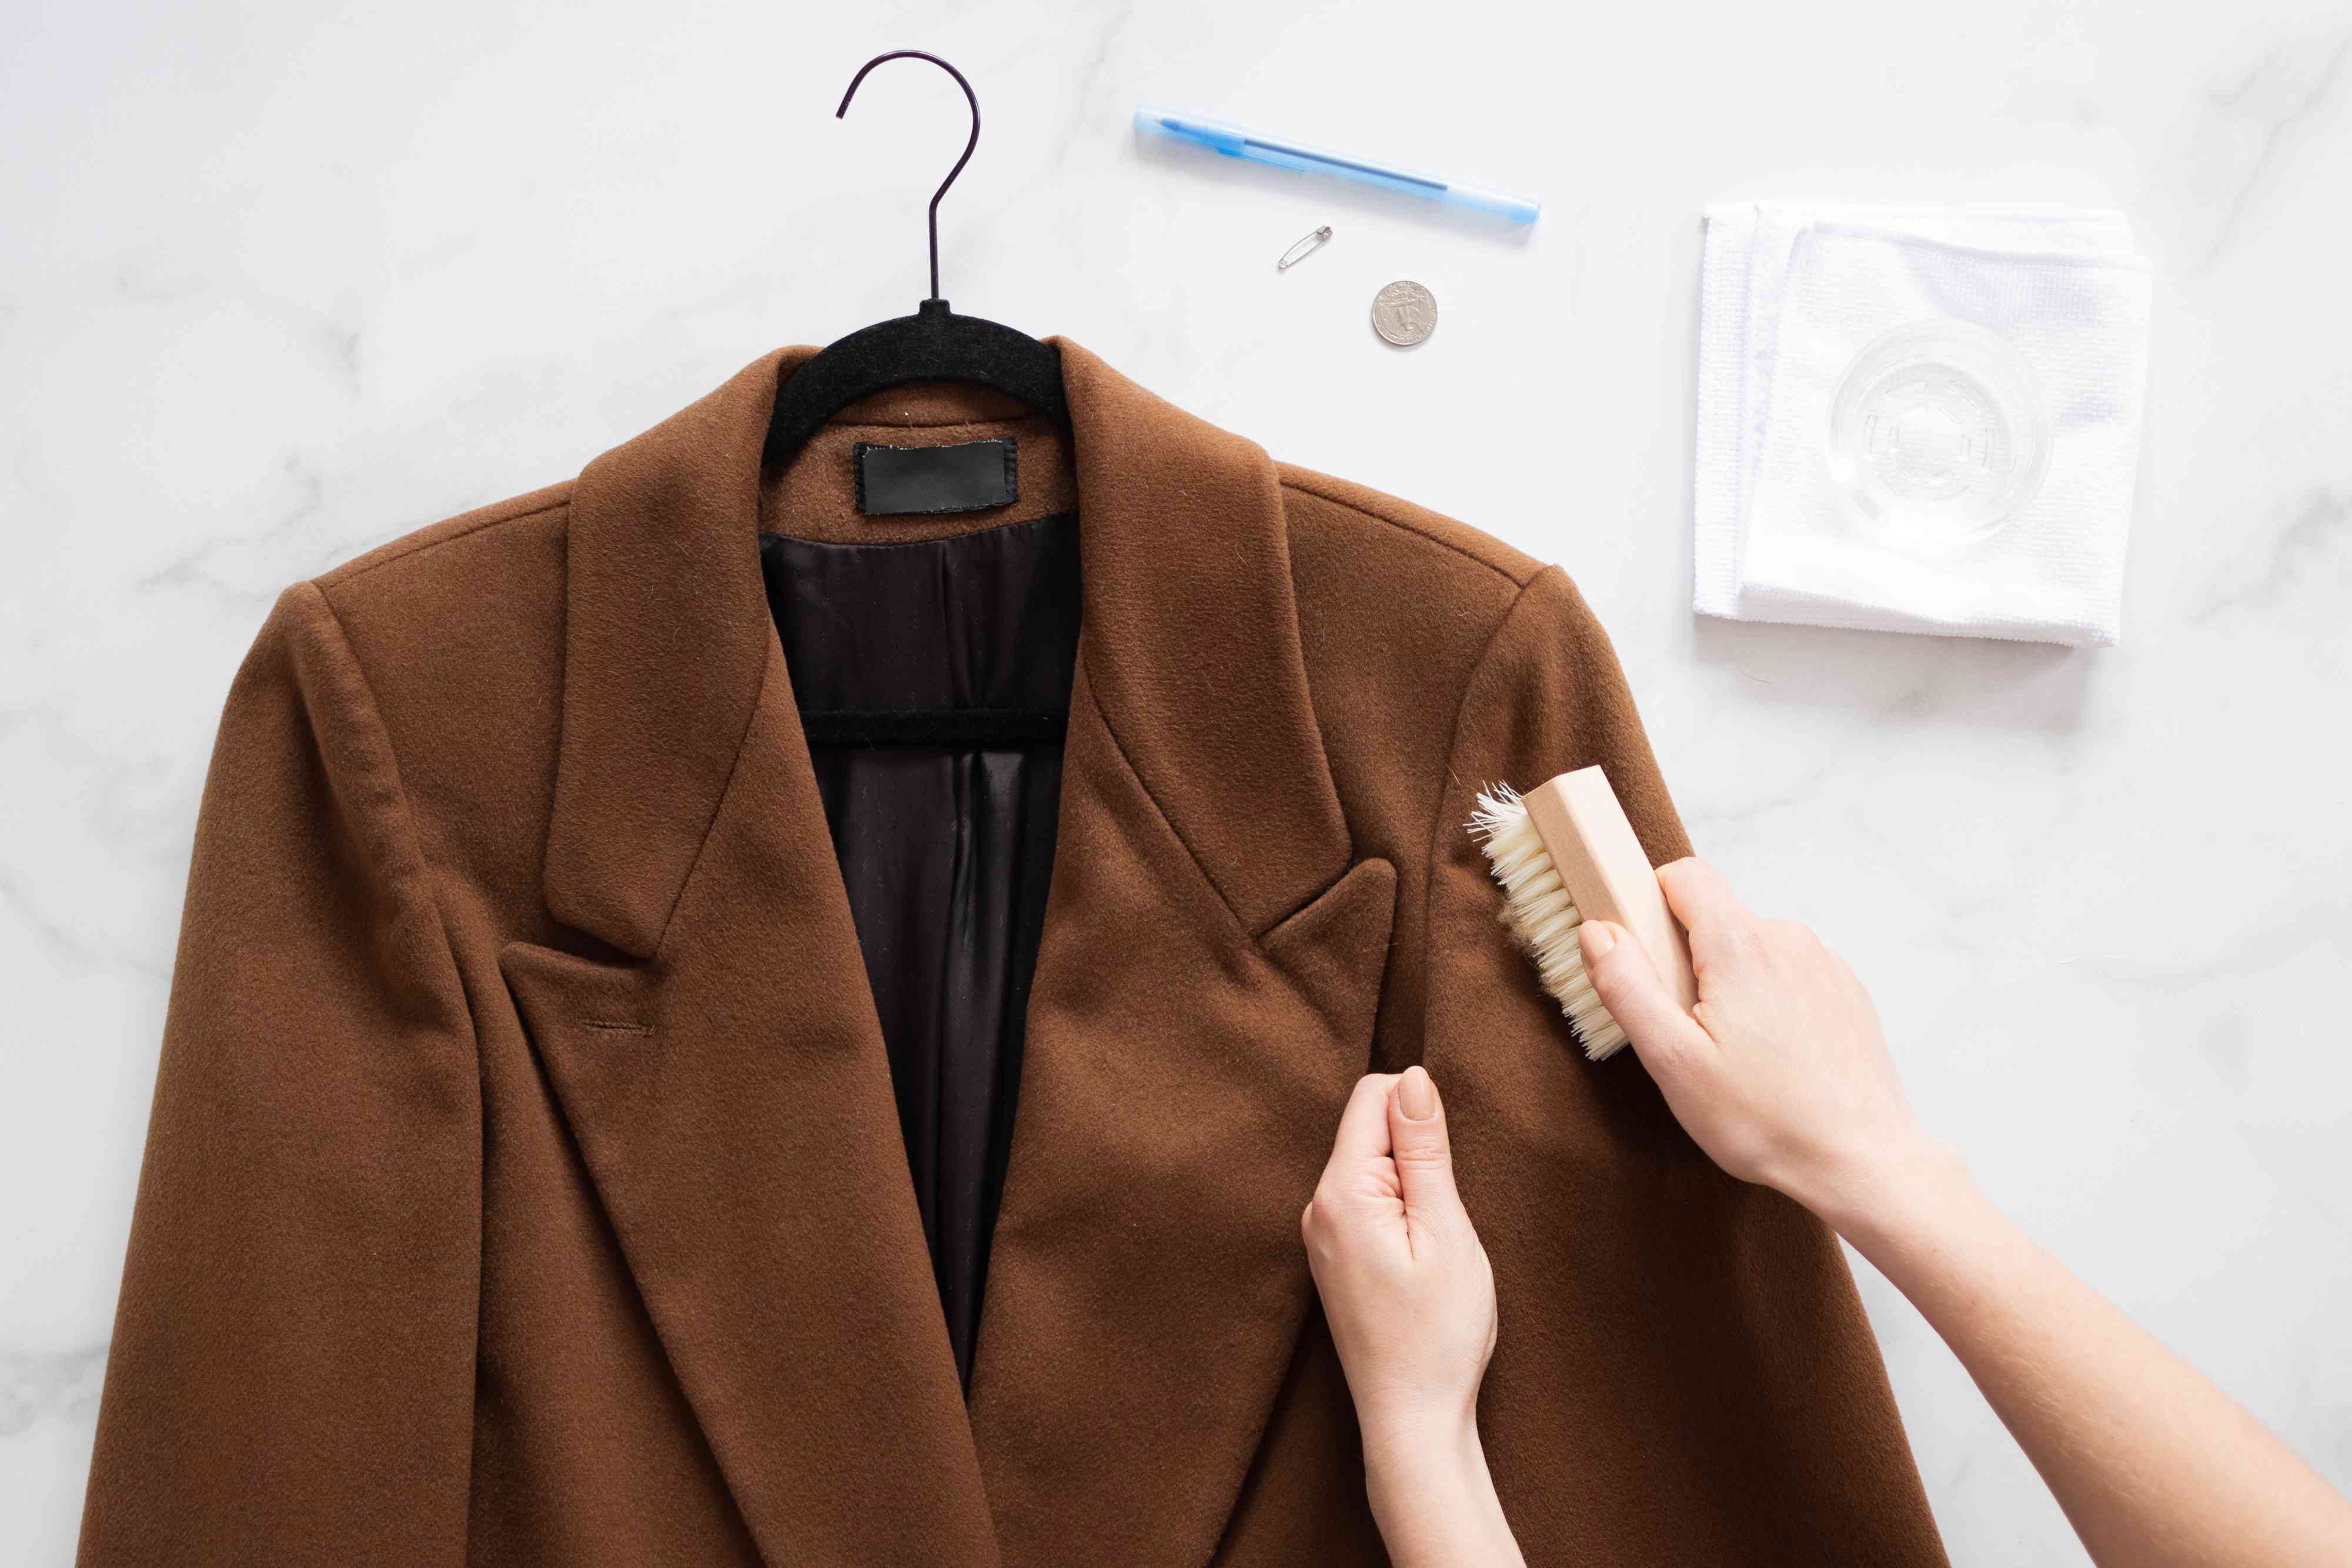 Brushing the wool coat to get any stains out